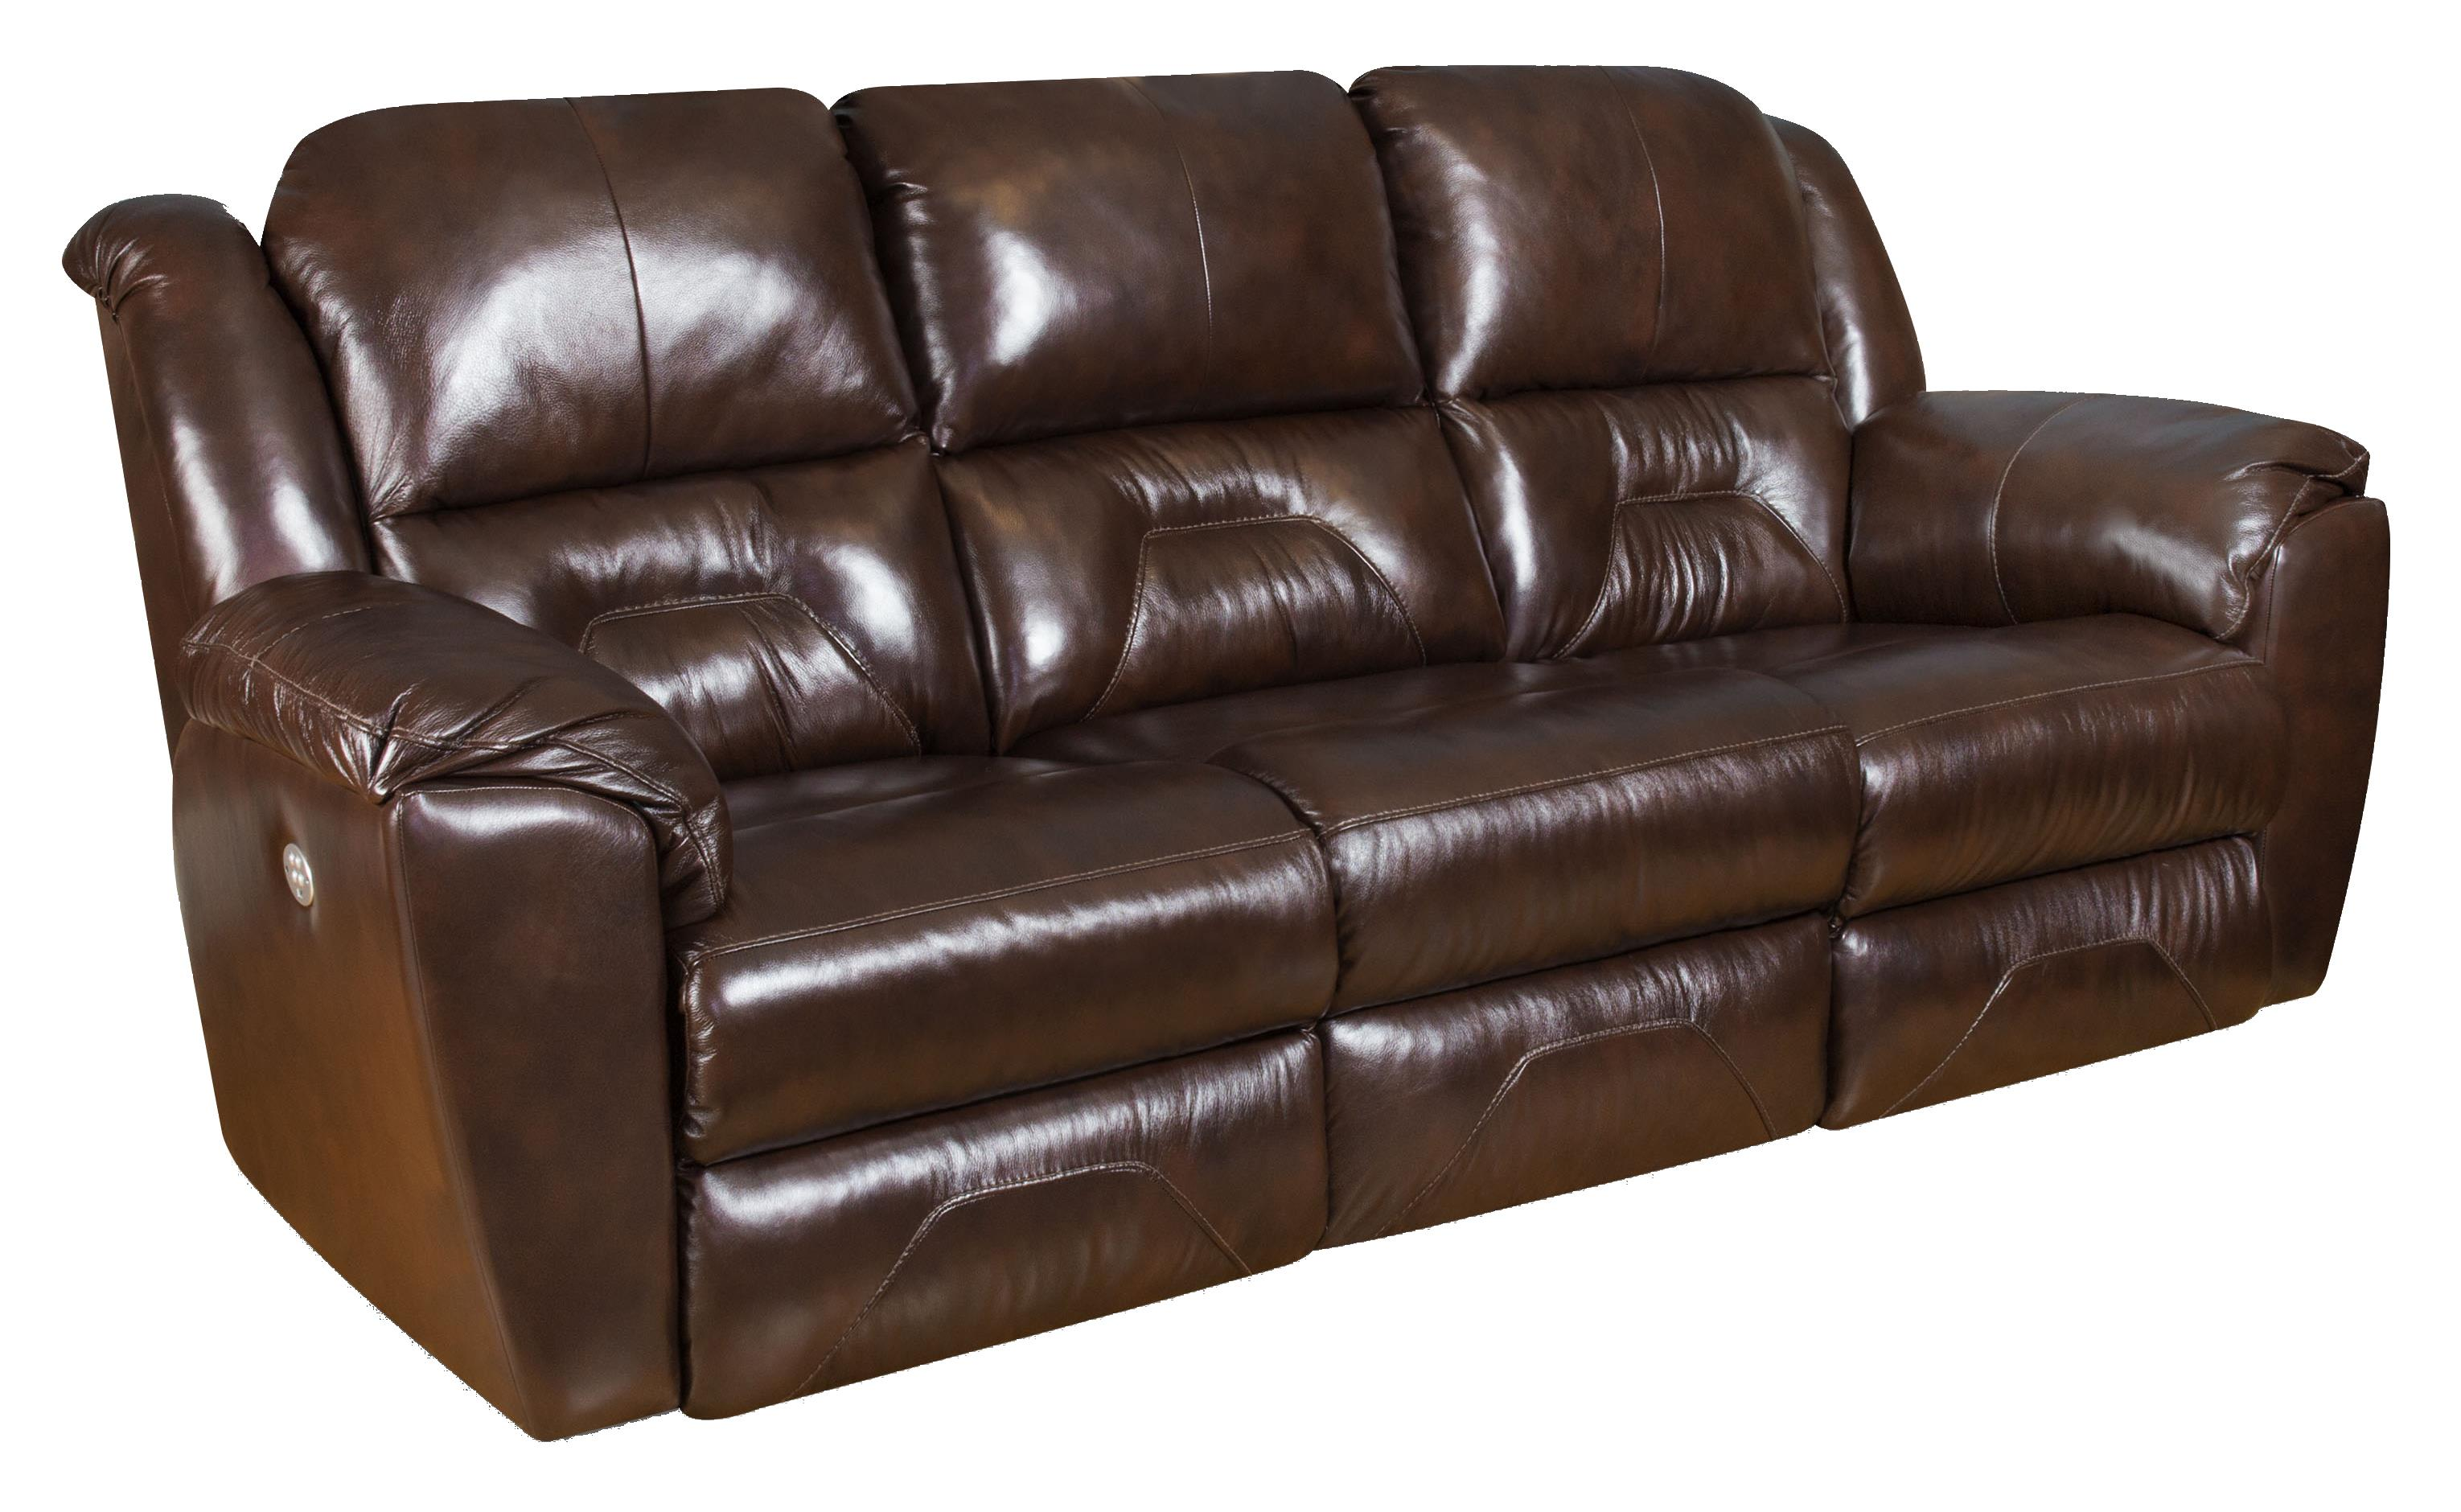 Pandora Power Plus Double Reclining Sofa by Southern Motion at Furniture Superstore - Rochester, MN